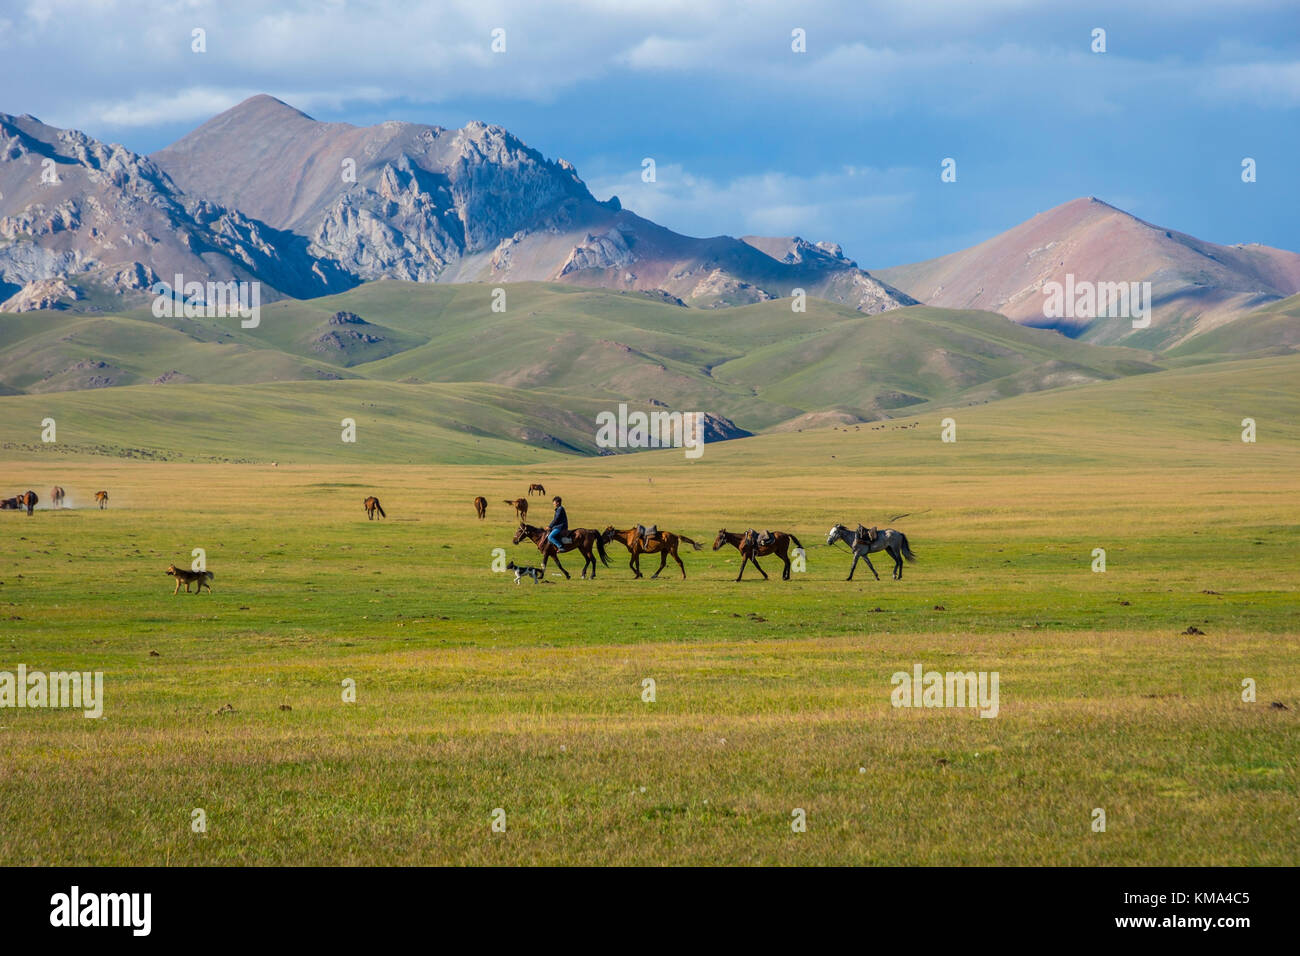 SONG KUL, KYRGYZSTAN - AUGUST 11: Man riding and guiding horses over scenic landscape of Song Kul lake. August 2016 - Stock Image